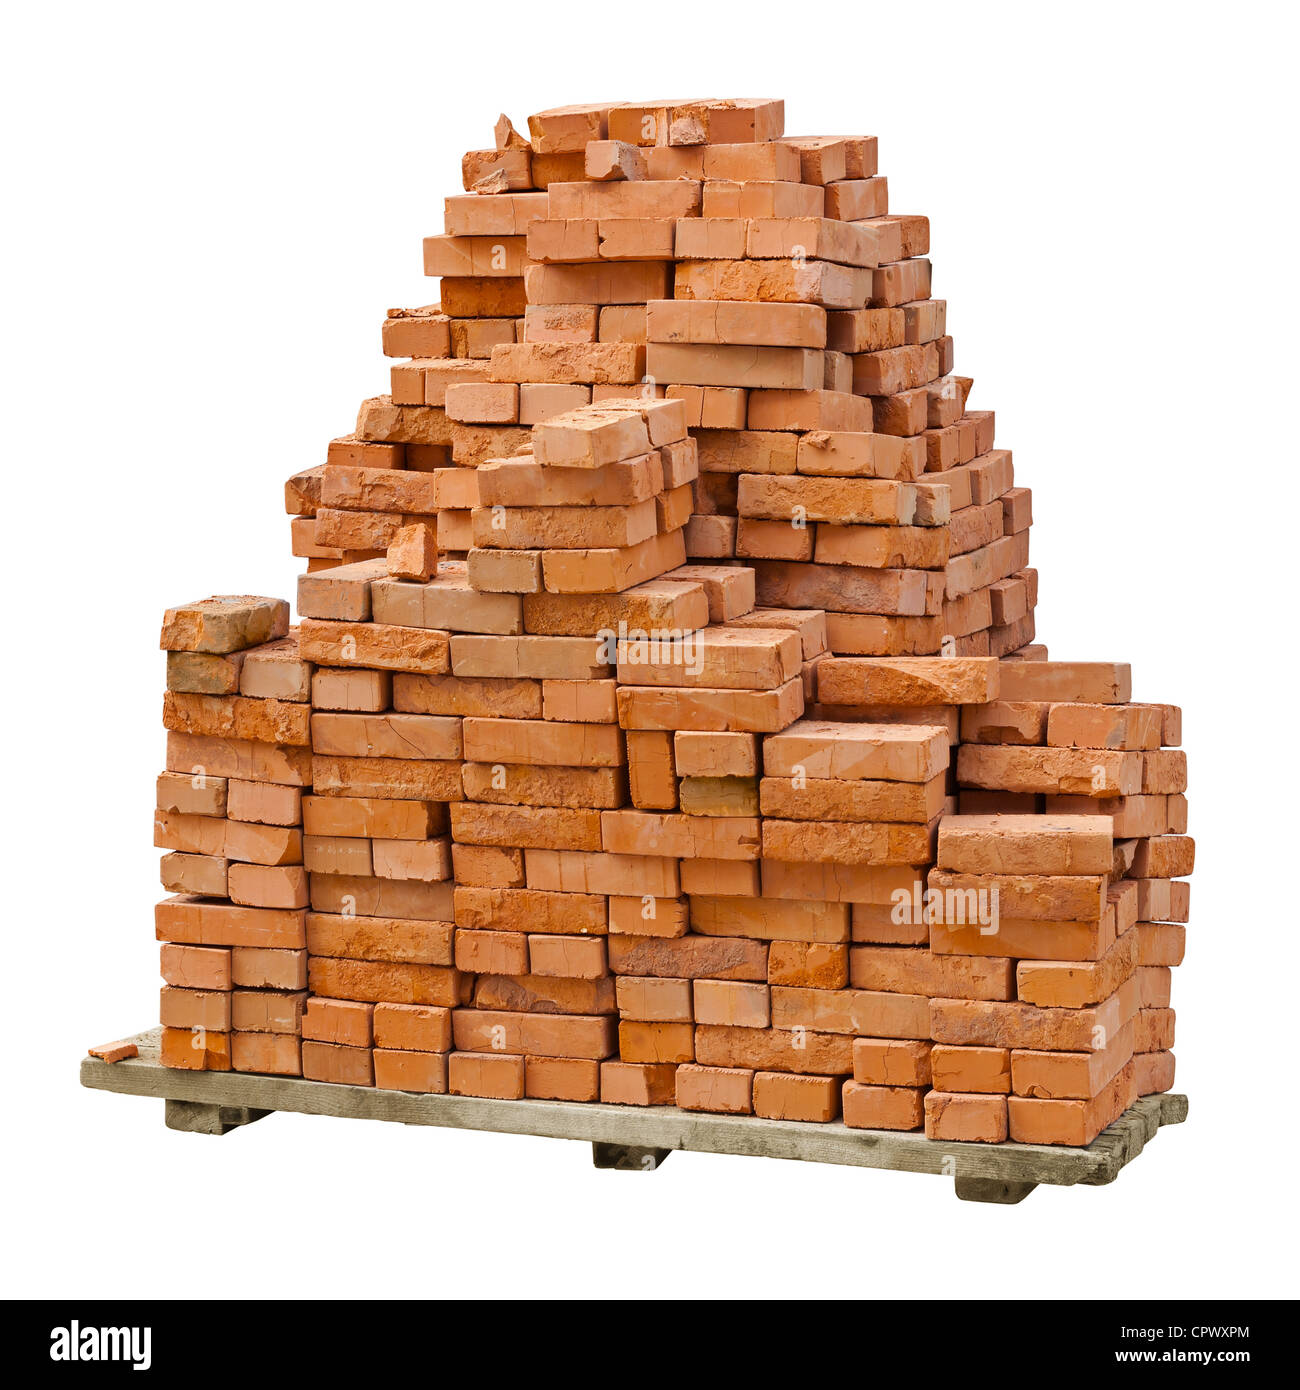 A stack of red clay bricks isolated on a white background - Stock Image